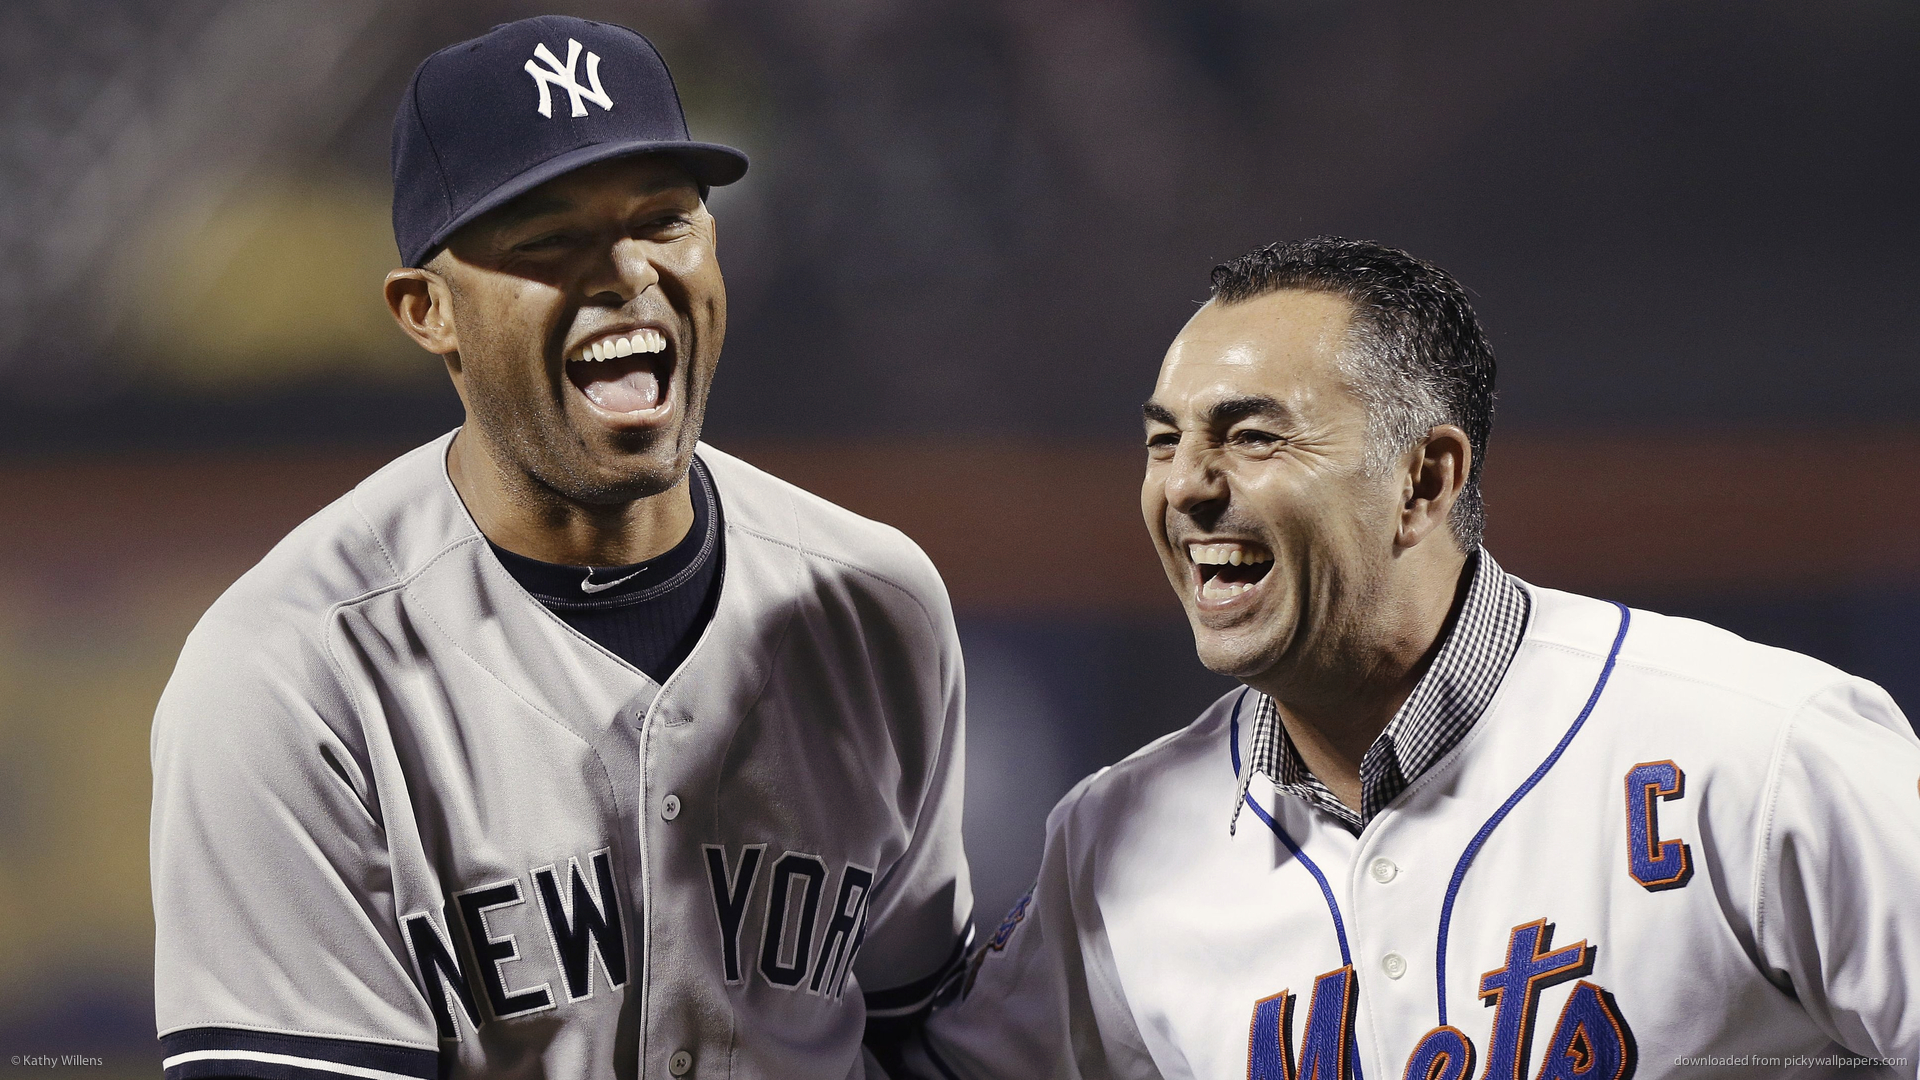 Mariano Rivera With Former Mets Closer John Franco Wallpaper For Nokia ...